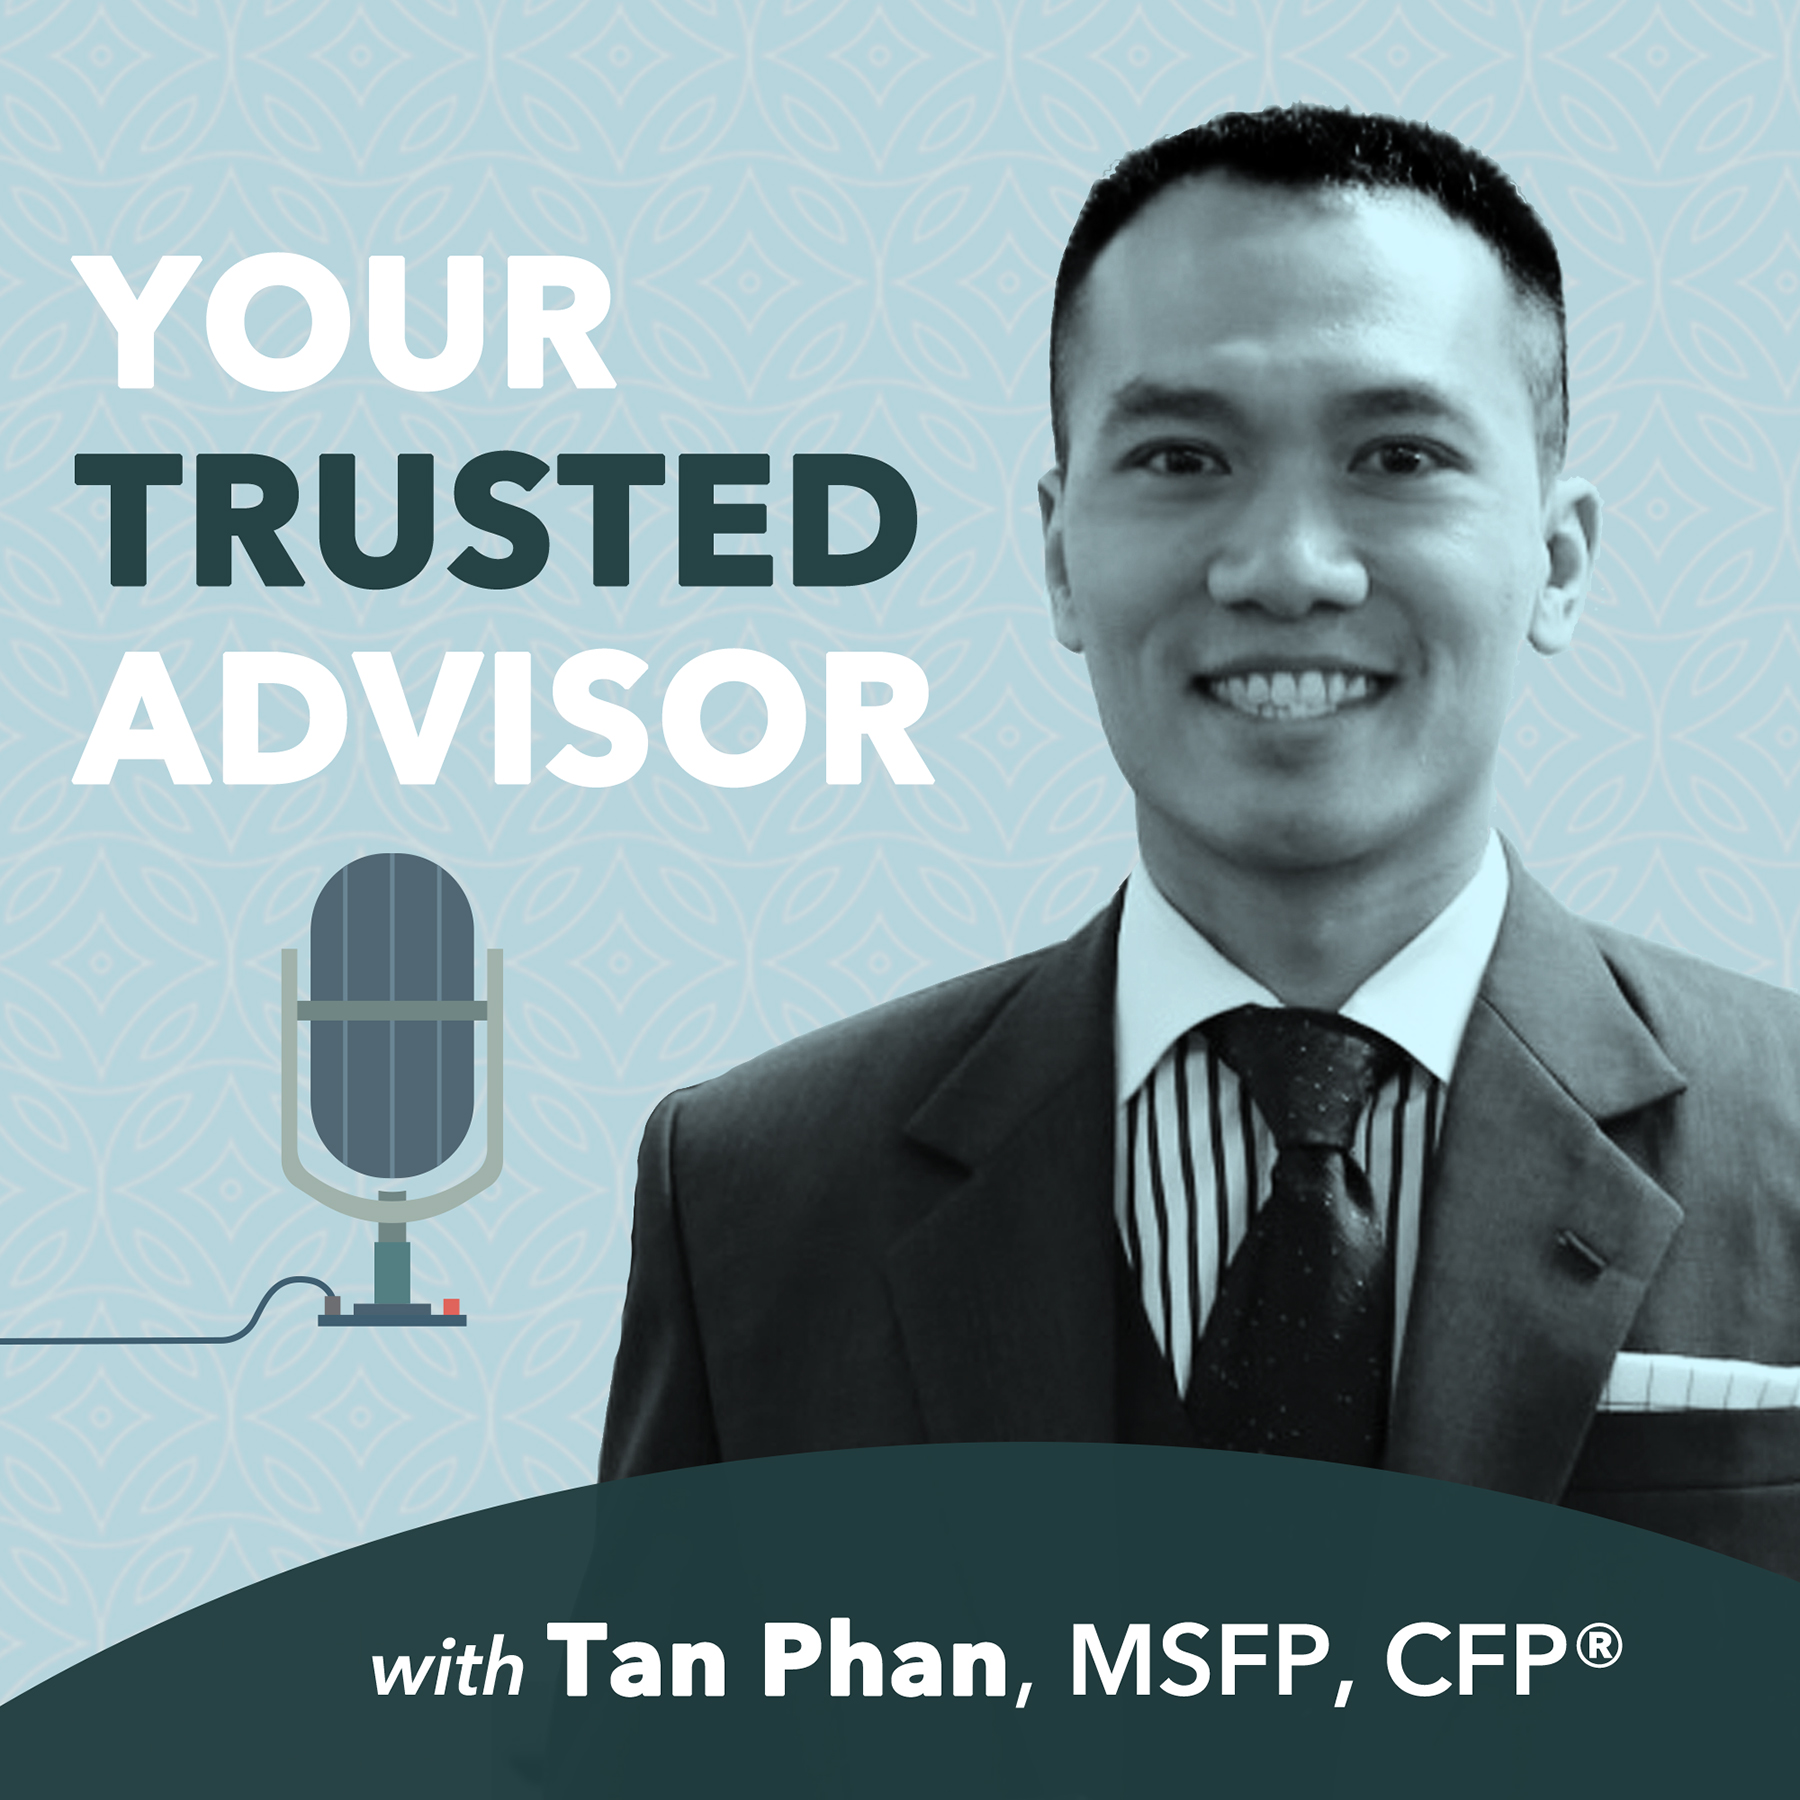 Your Trusted Advisor with Tan Phan, MSFP, CFP®